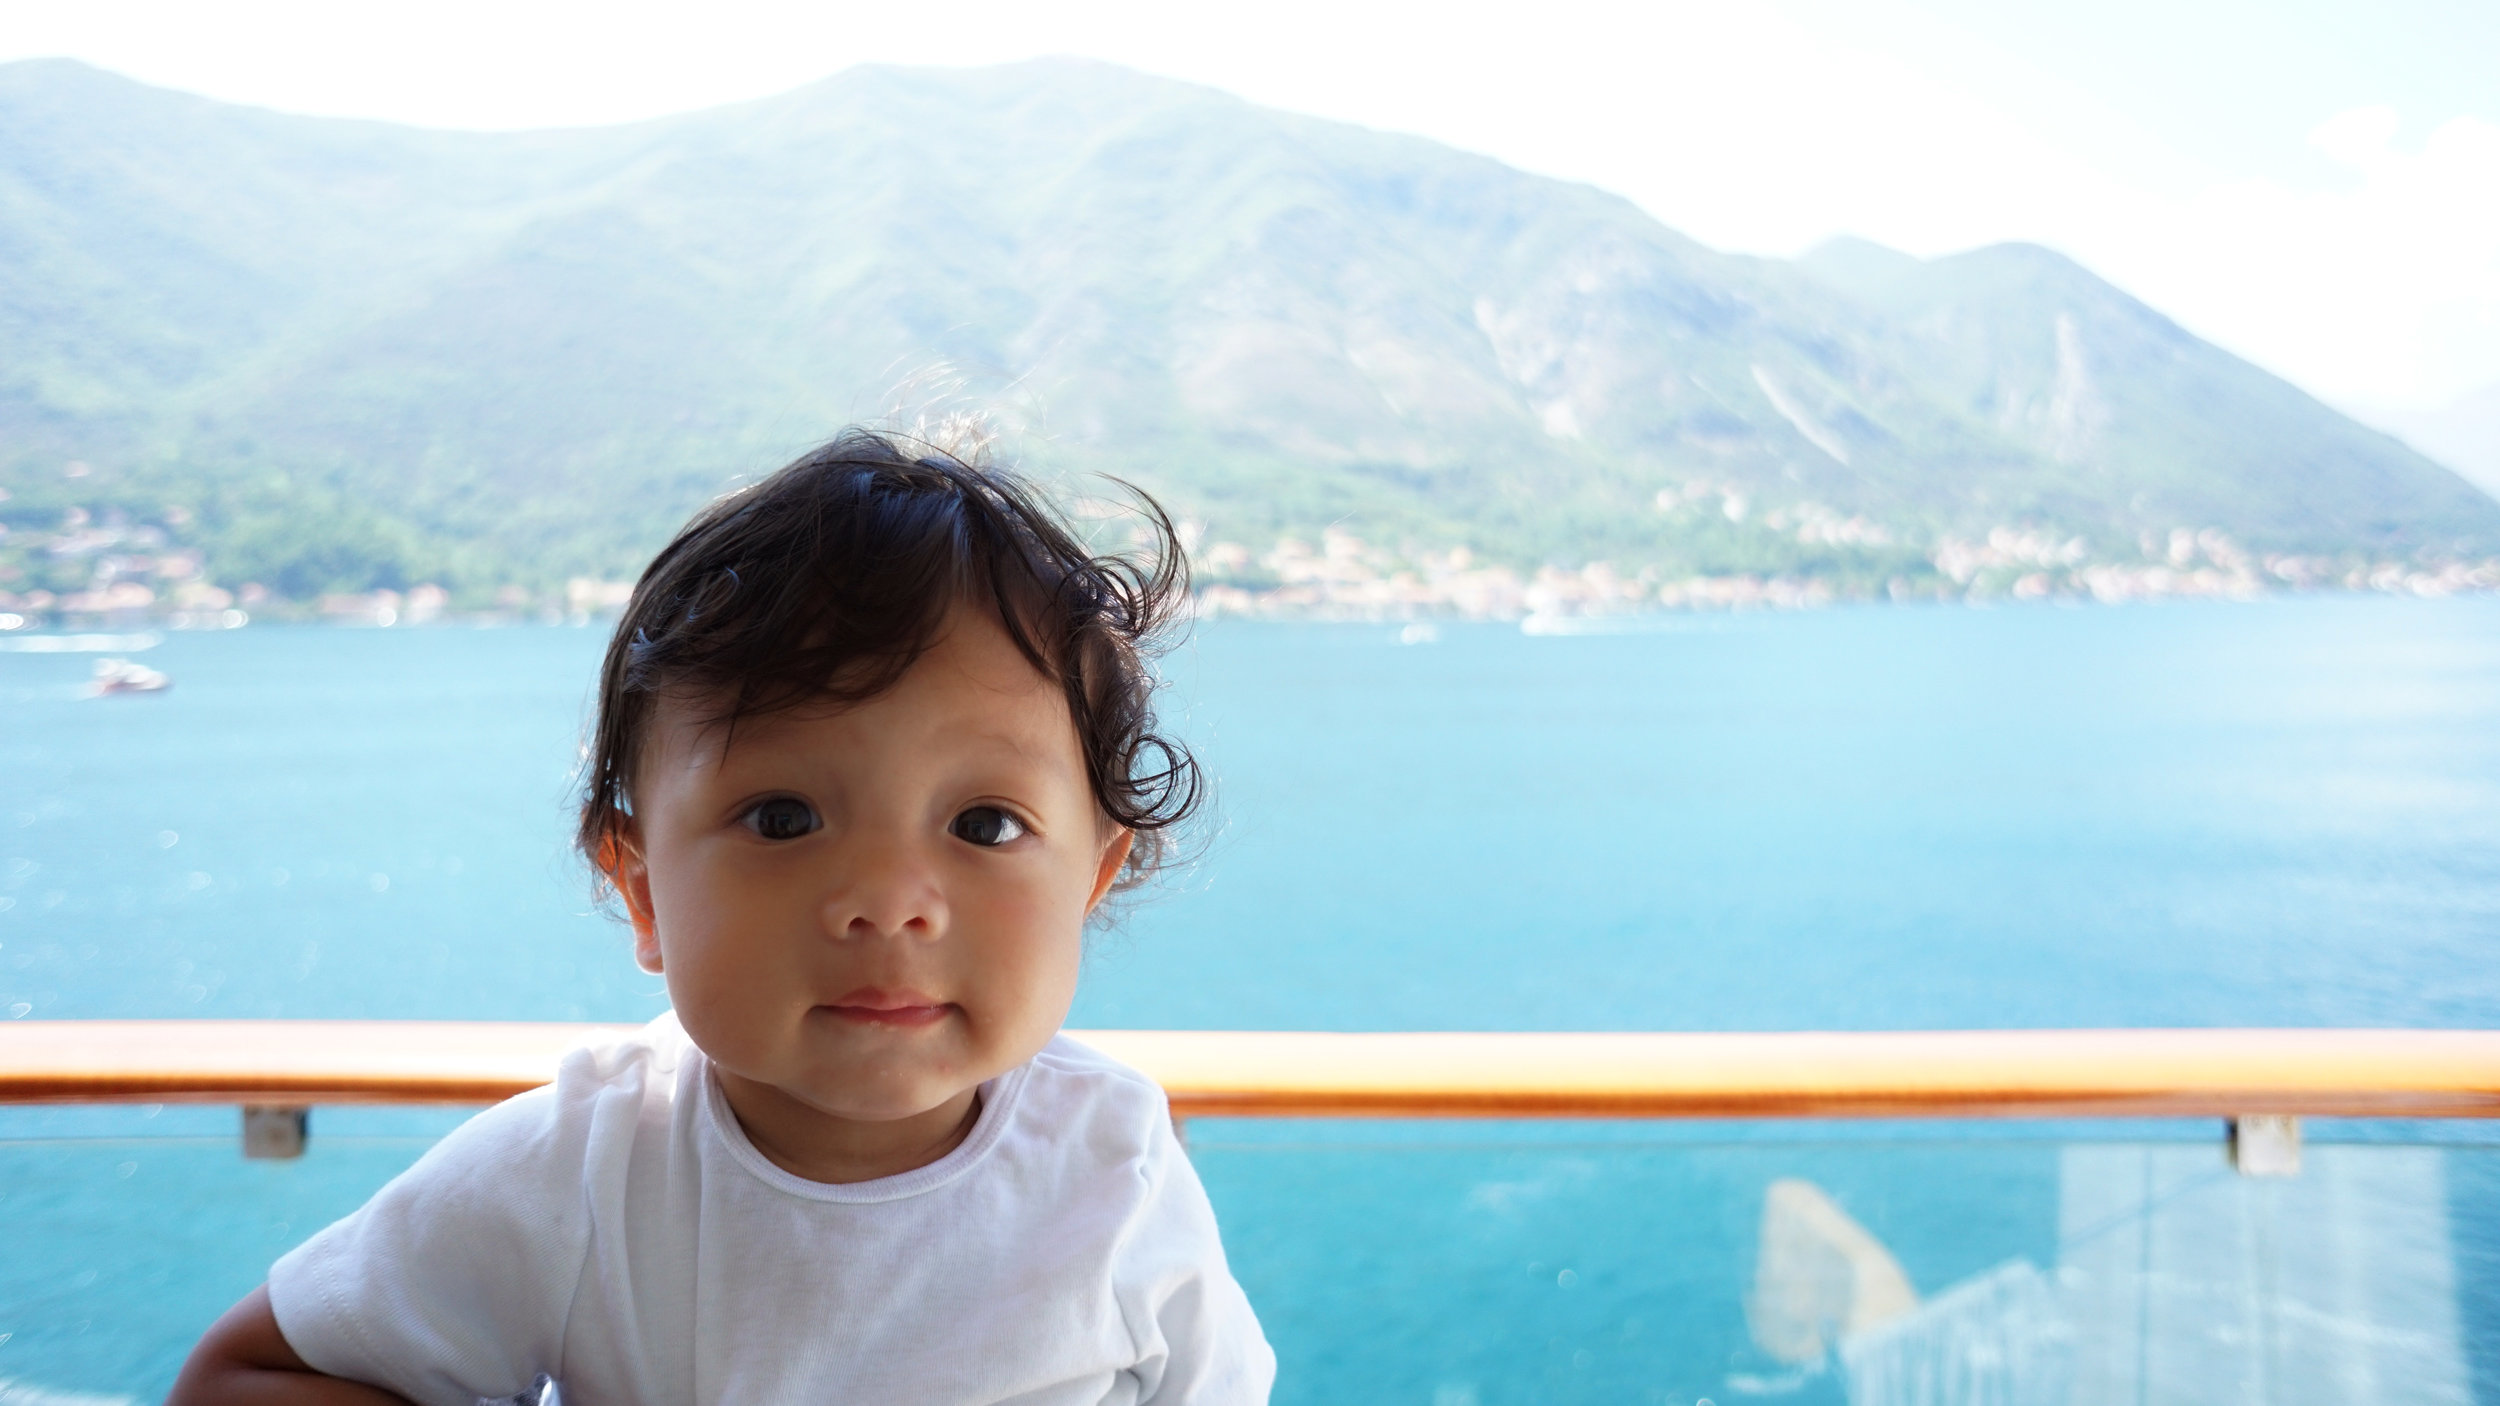 Orlo (7 months old) cruising through the Bay of Kotor